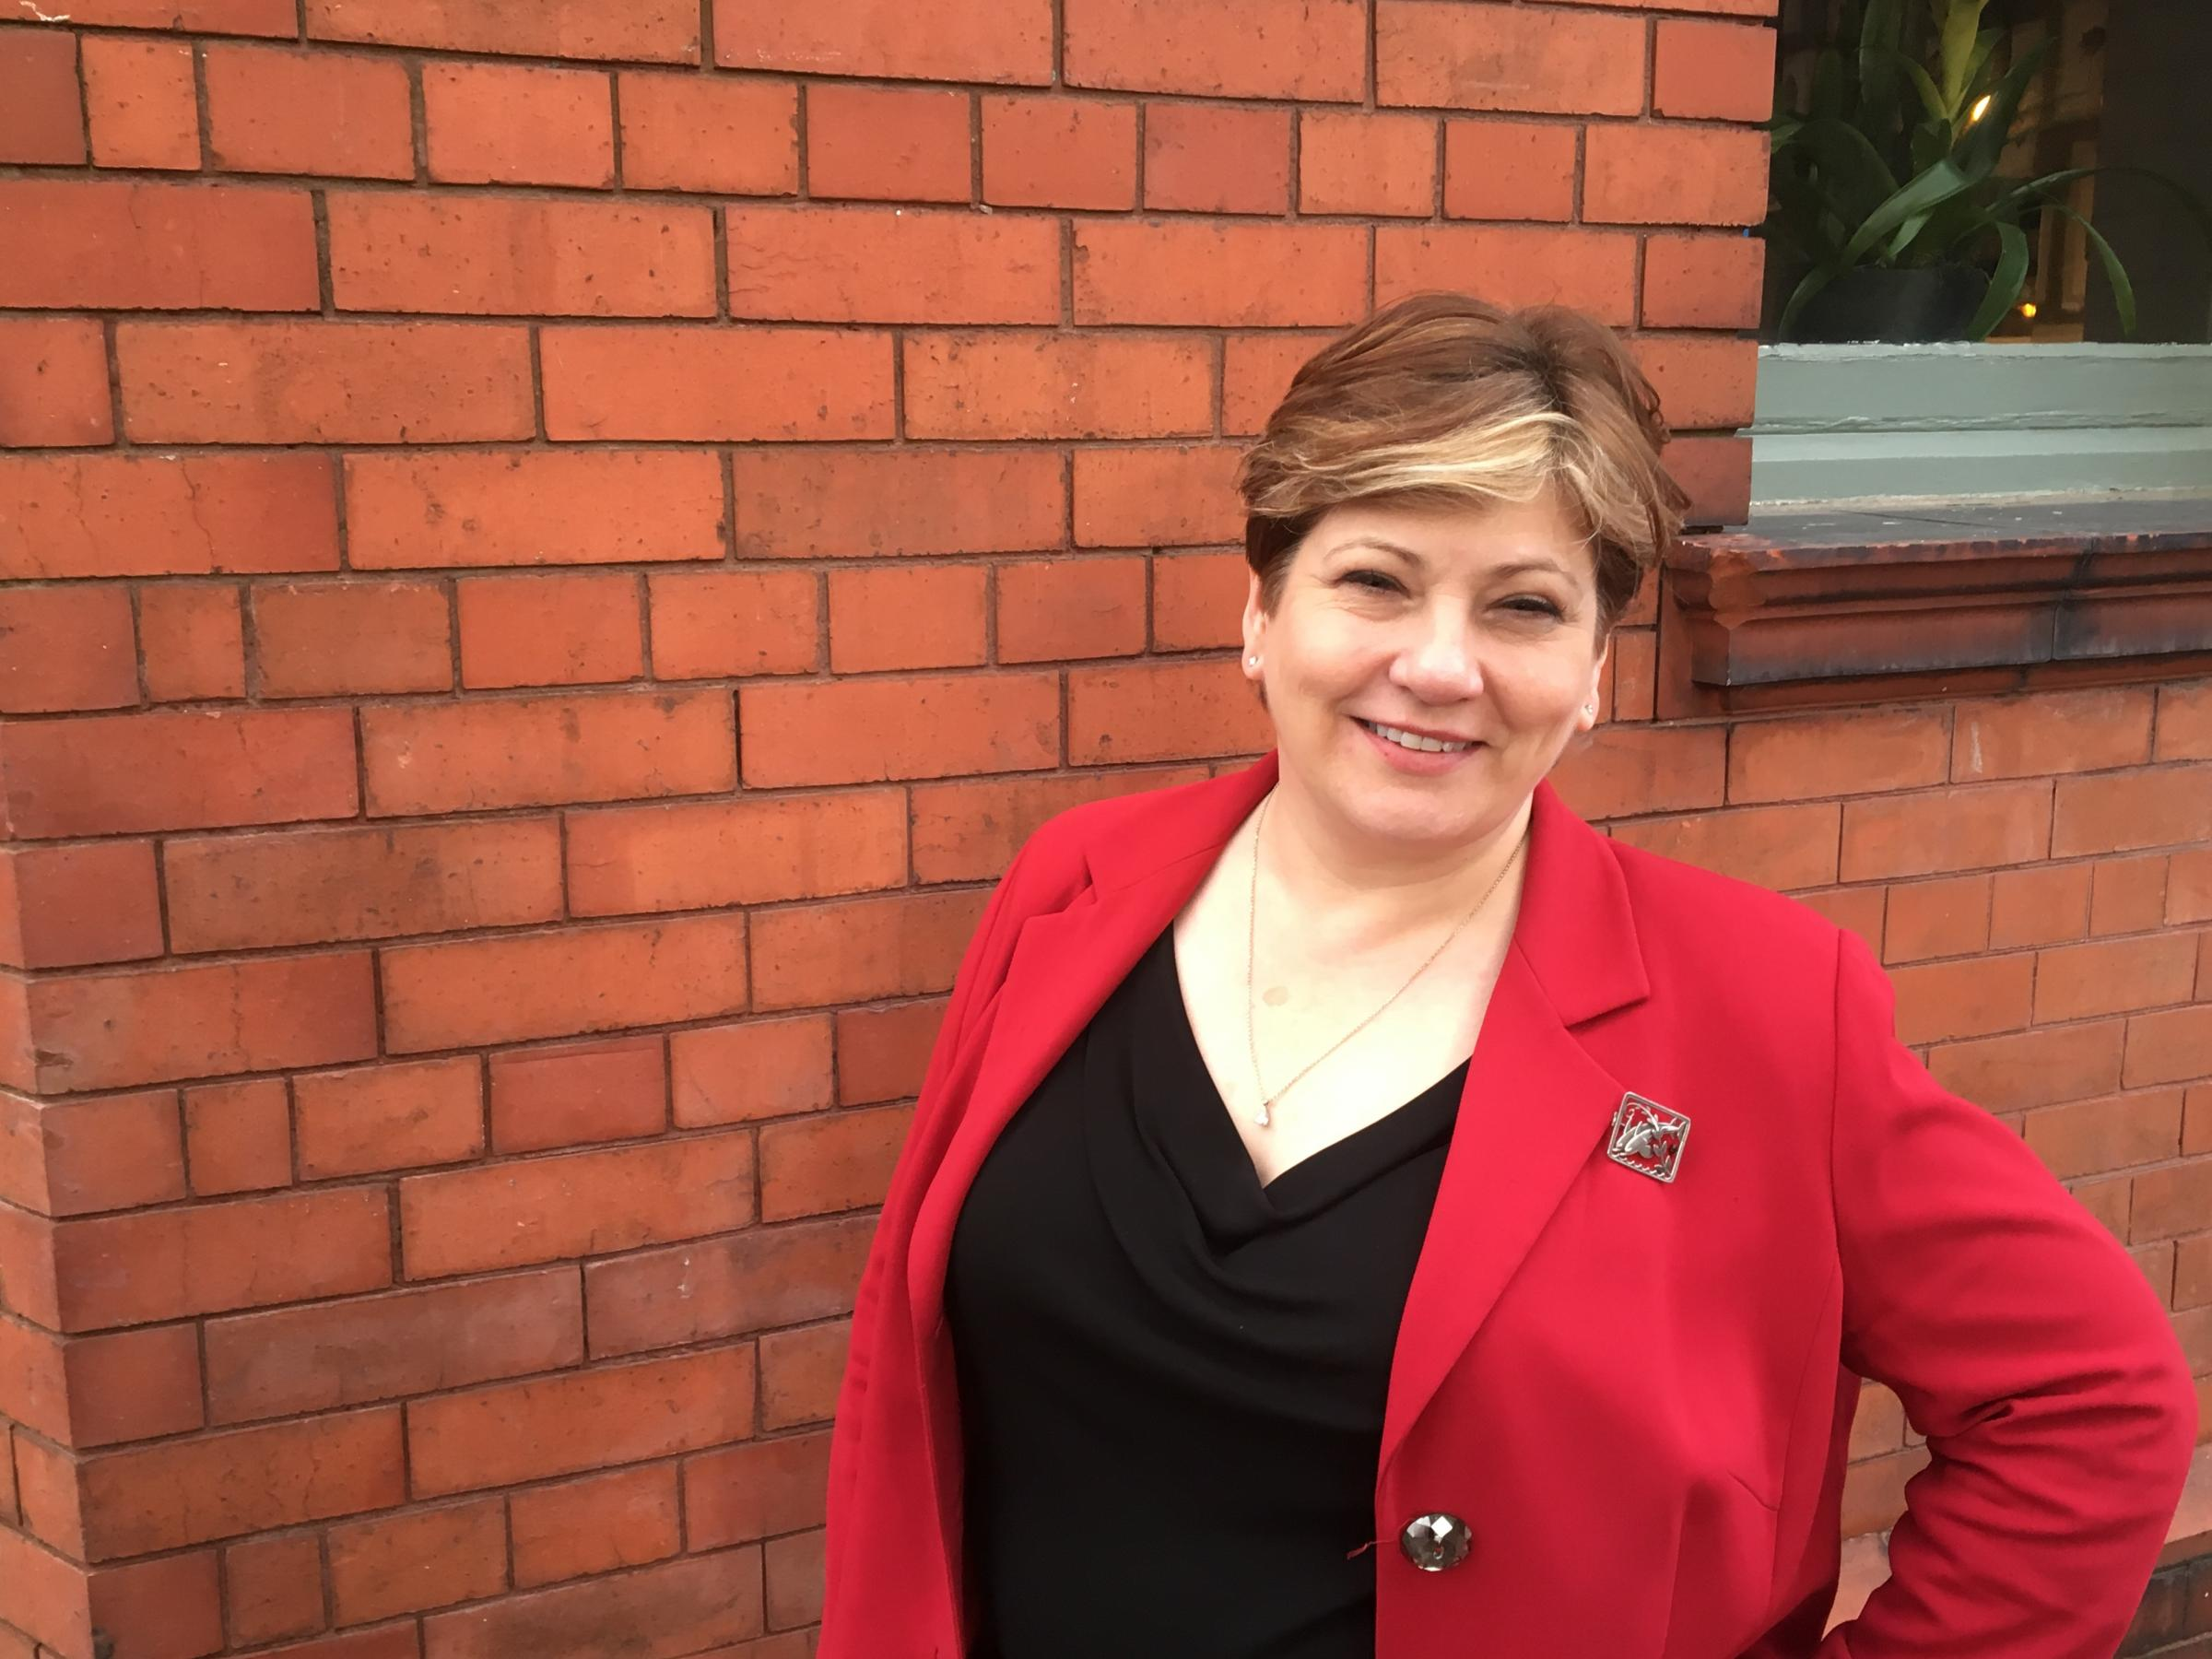 WOMEN'S DAY: Emily Thornberry, shadow foreign secretary